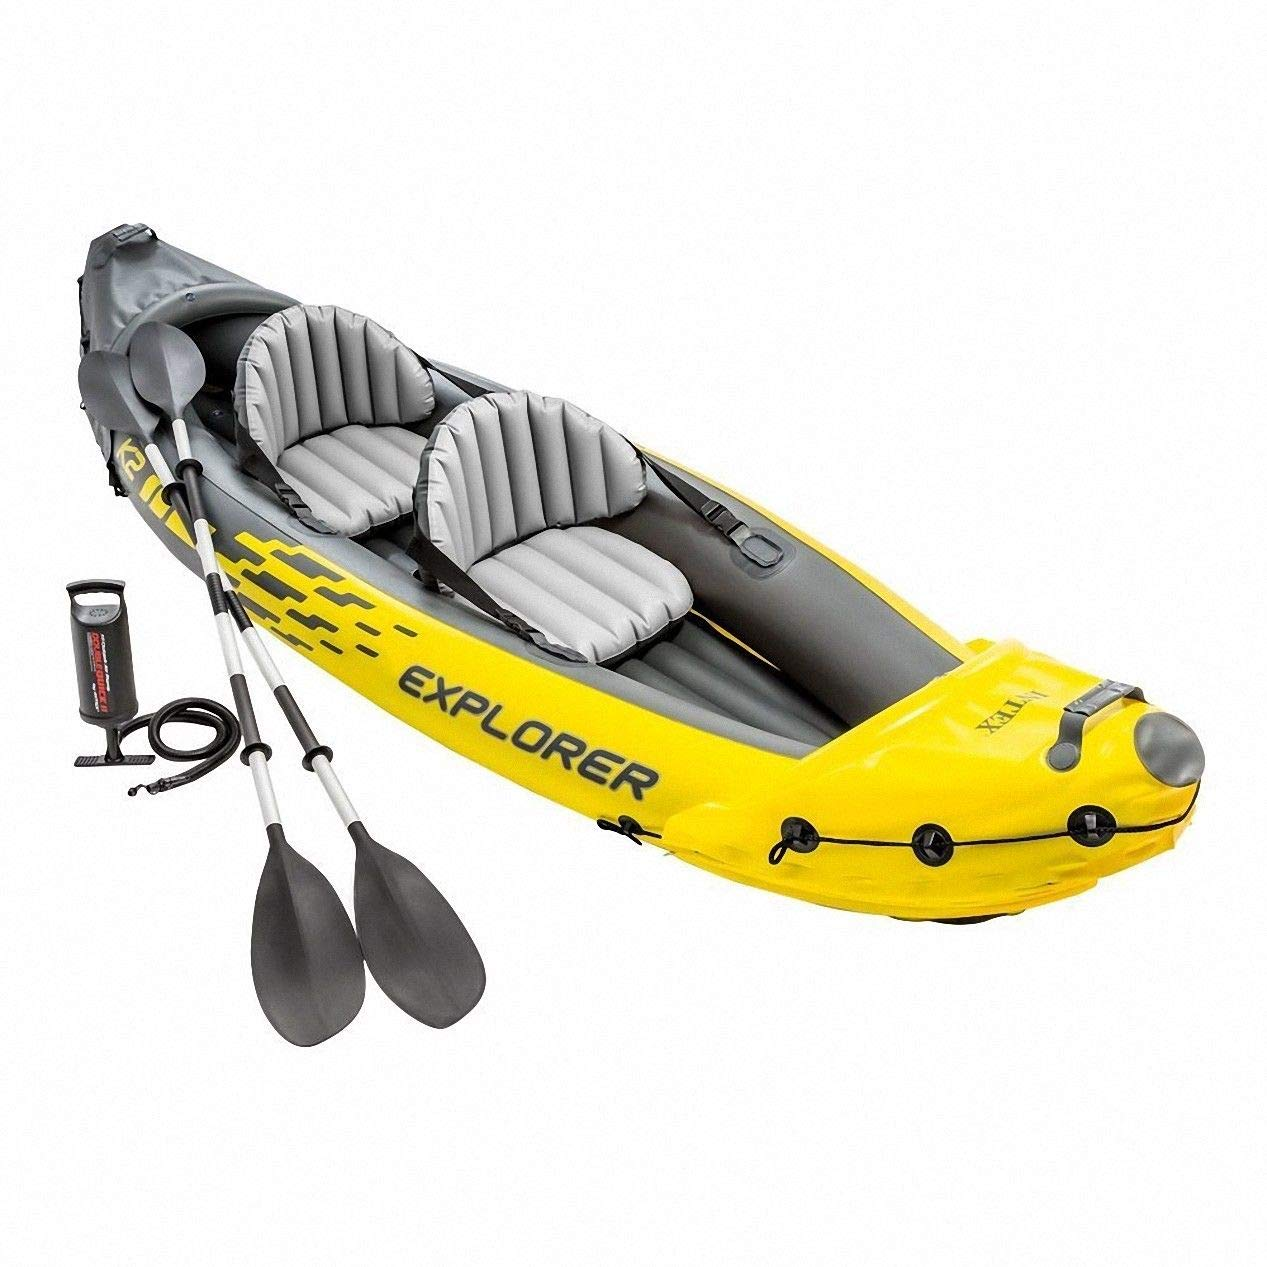 2. Intex Explorer K2 Yellow 2 Person Inflatable Kayak with Aluminum Oars & Air Pump